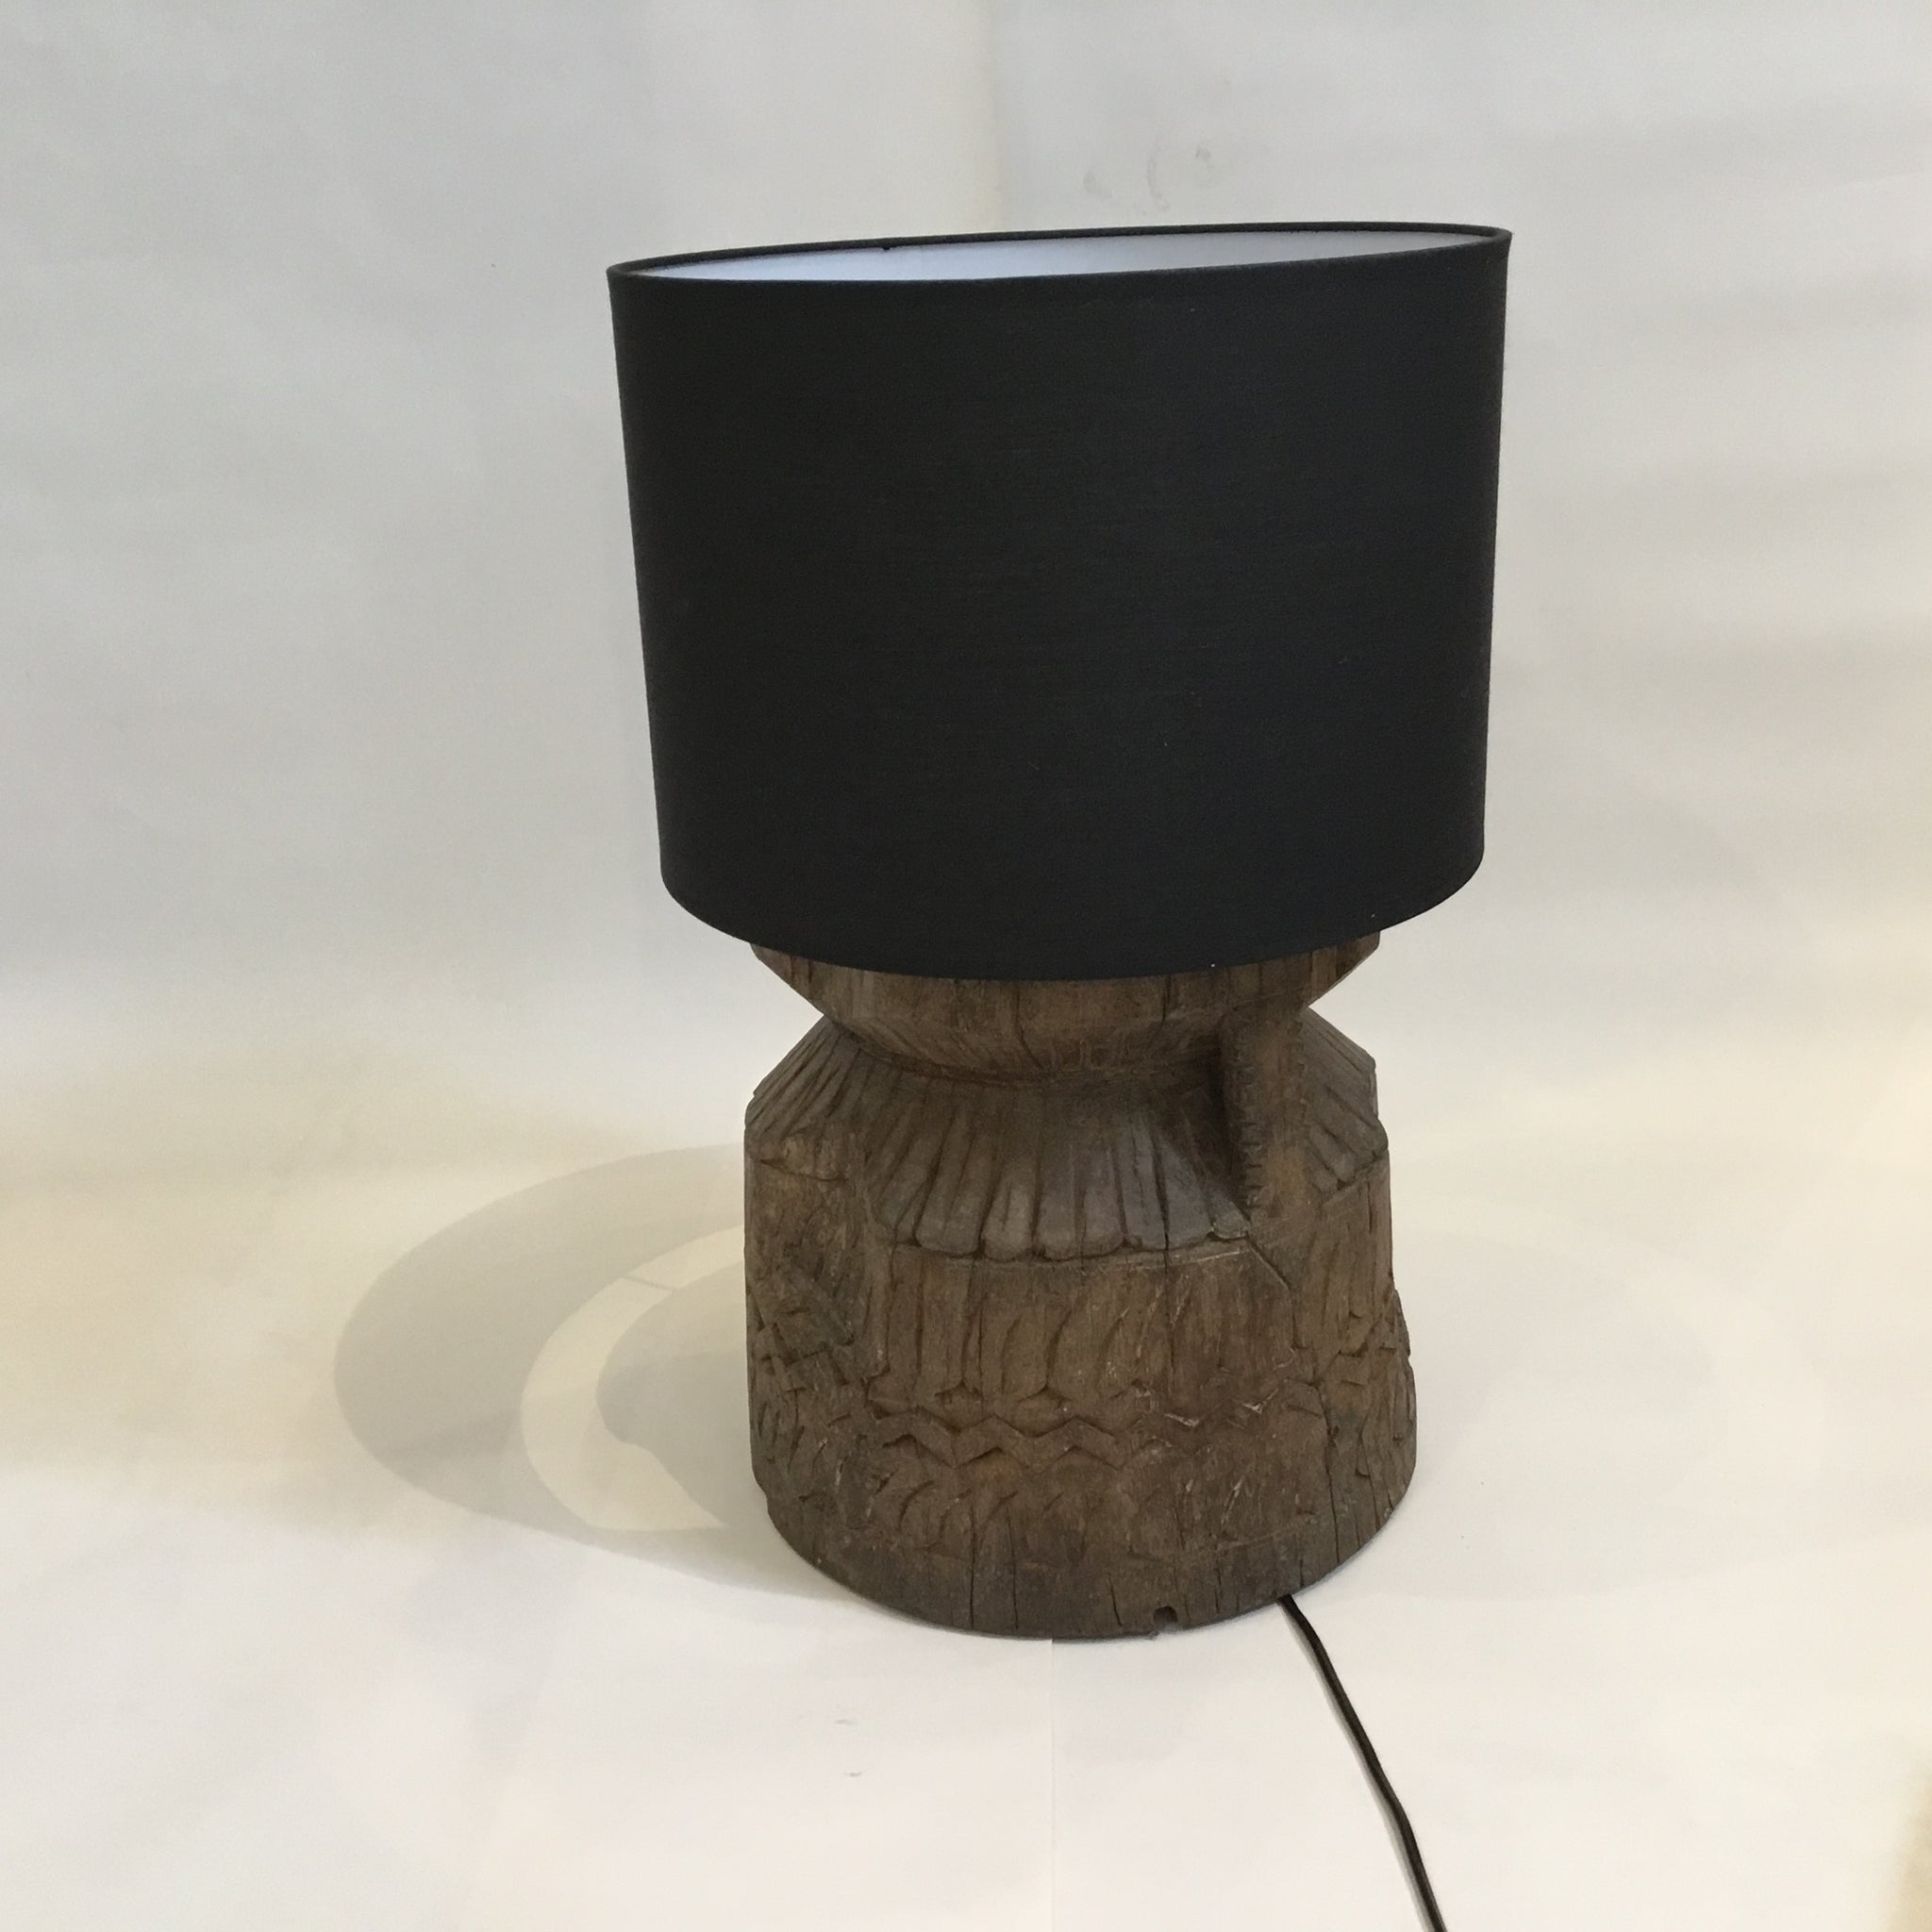 Lamp | Carved Old Indian Urn with Black Shade